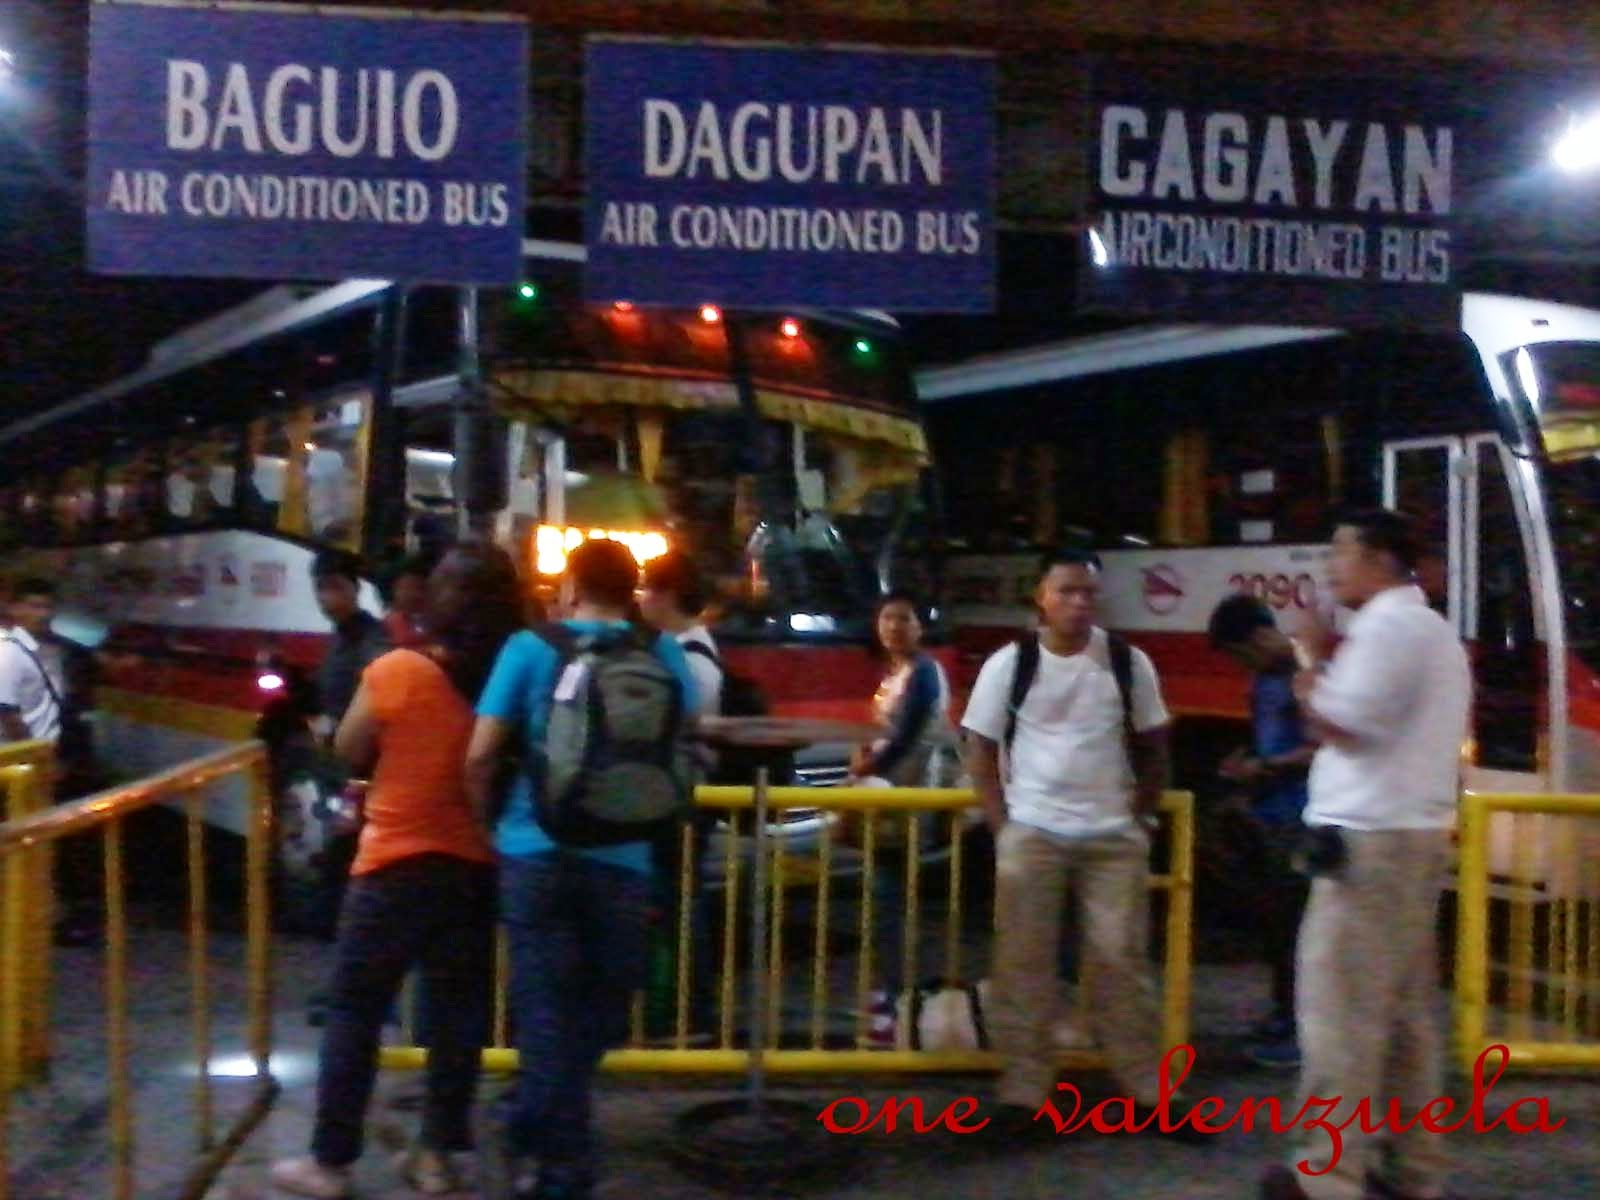 One valenzuela travels off to baguio part 1 the midnight trip to baguio leaves at 1130pm one valenzuela saw several chance passengers lined up solutioingenieria Image collections